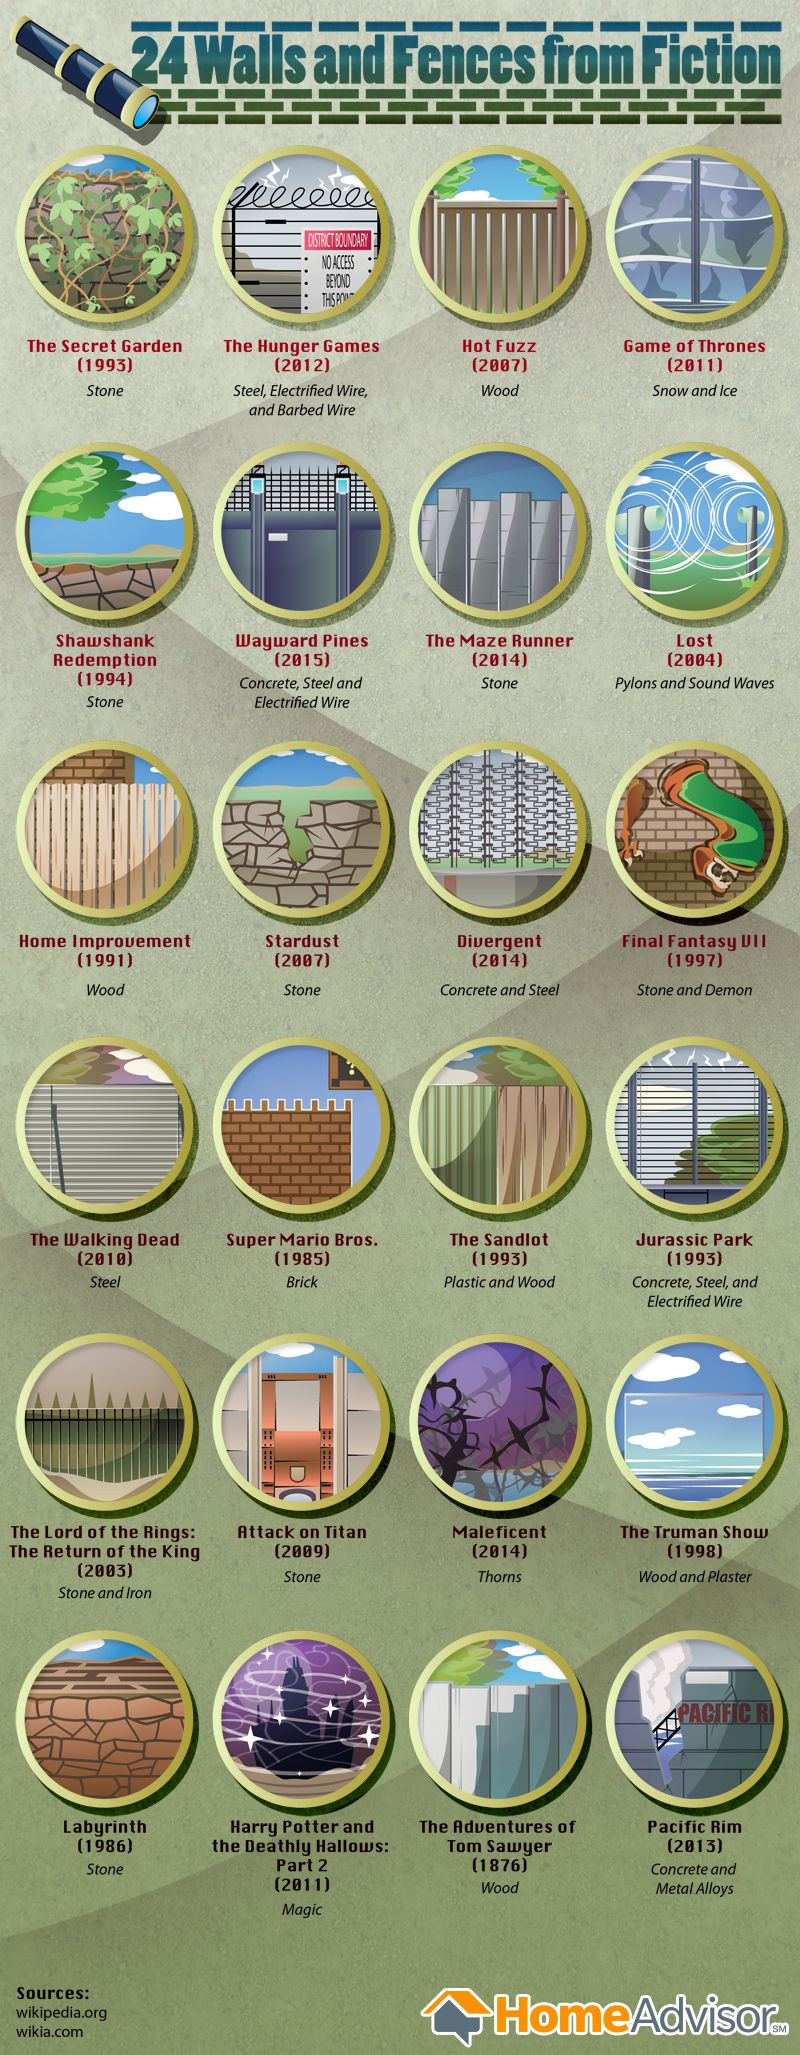 24 Walls and Fences from Fiction #Infographic